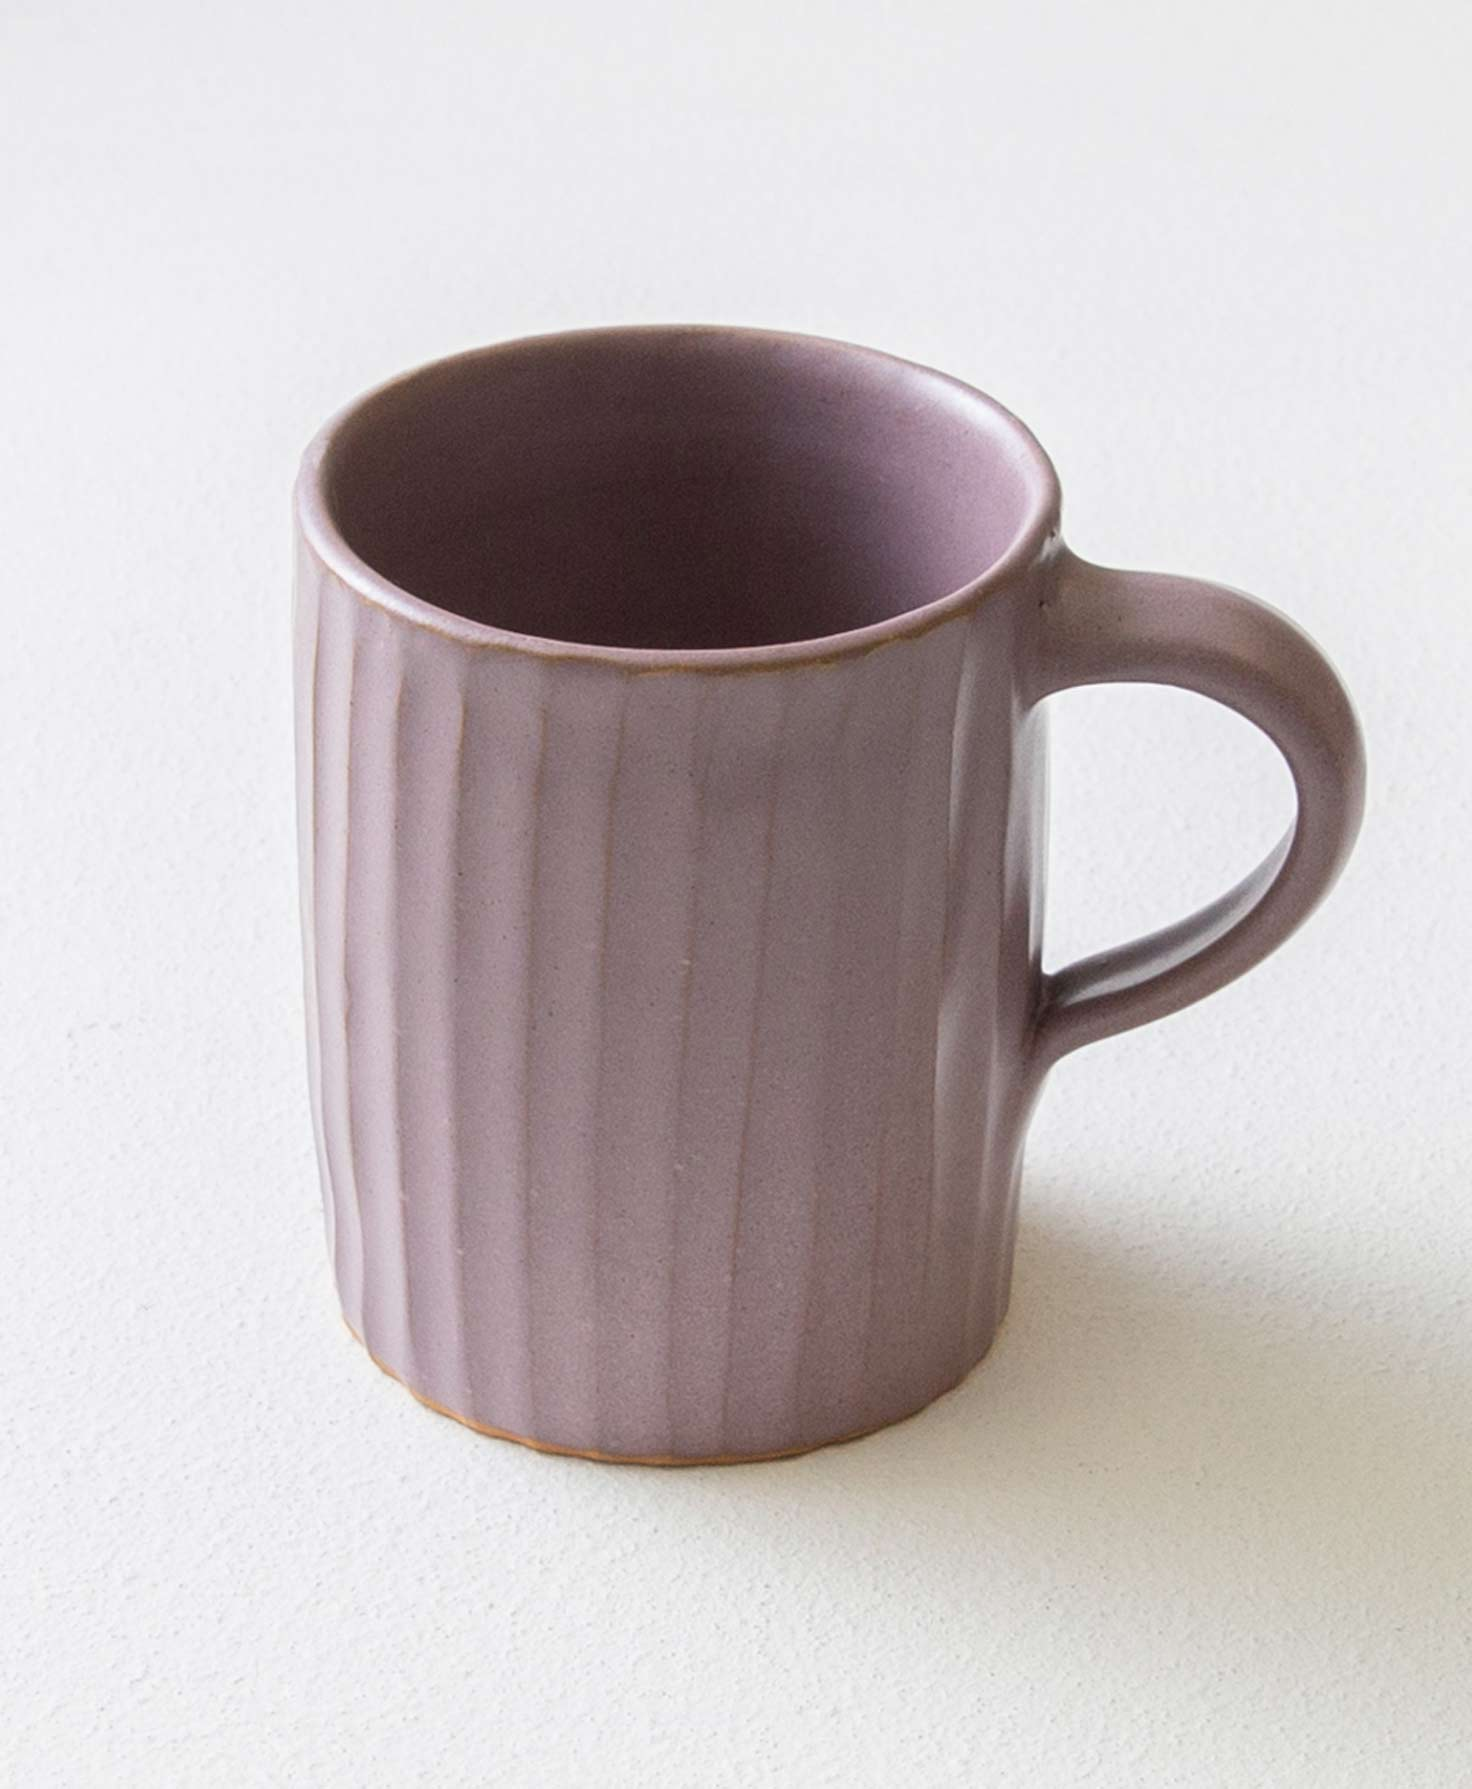 The Textured Ceramic Mug in Lilac sits on a white surface. It is made of dark lilac stoneware and has a natural, handmade texture. All the way around the mug, vertical indentations run from the top to the bottom. The effect feels like someone ran their fingers from the top of the clay to the bottom, leaving regular rows of indentations. The mug has a handle made of the same lilac stoneware.